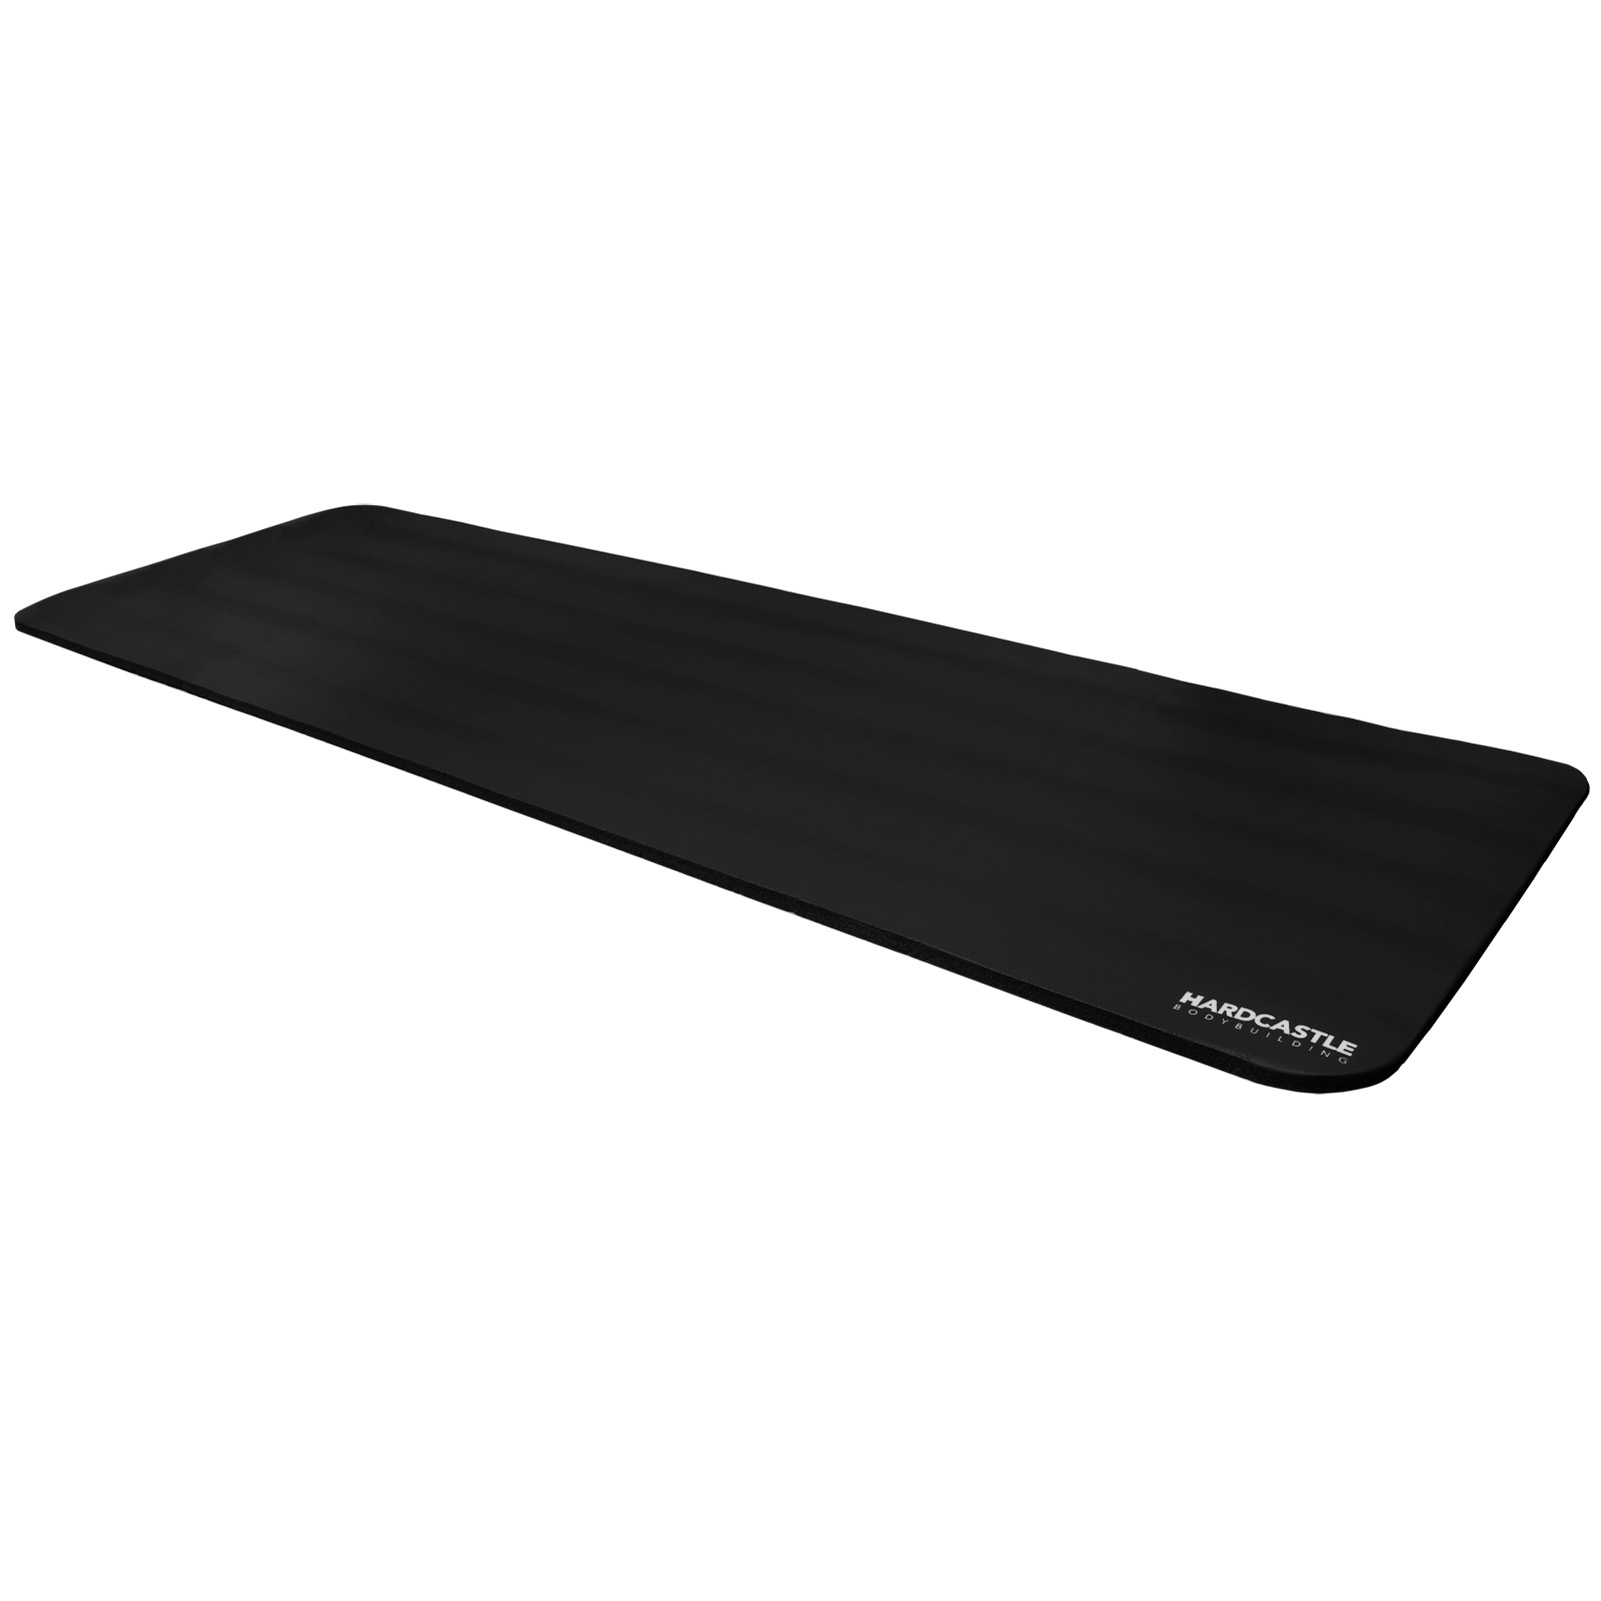 HARDCASTLE BLACK 15MM THICK YOGA//FITNESS//EXERCISE//FLOOR MAT GYM CLASS//WORKOUT UK